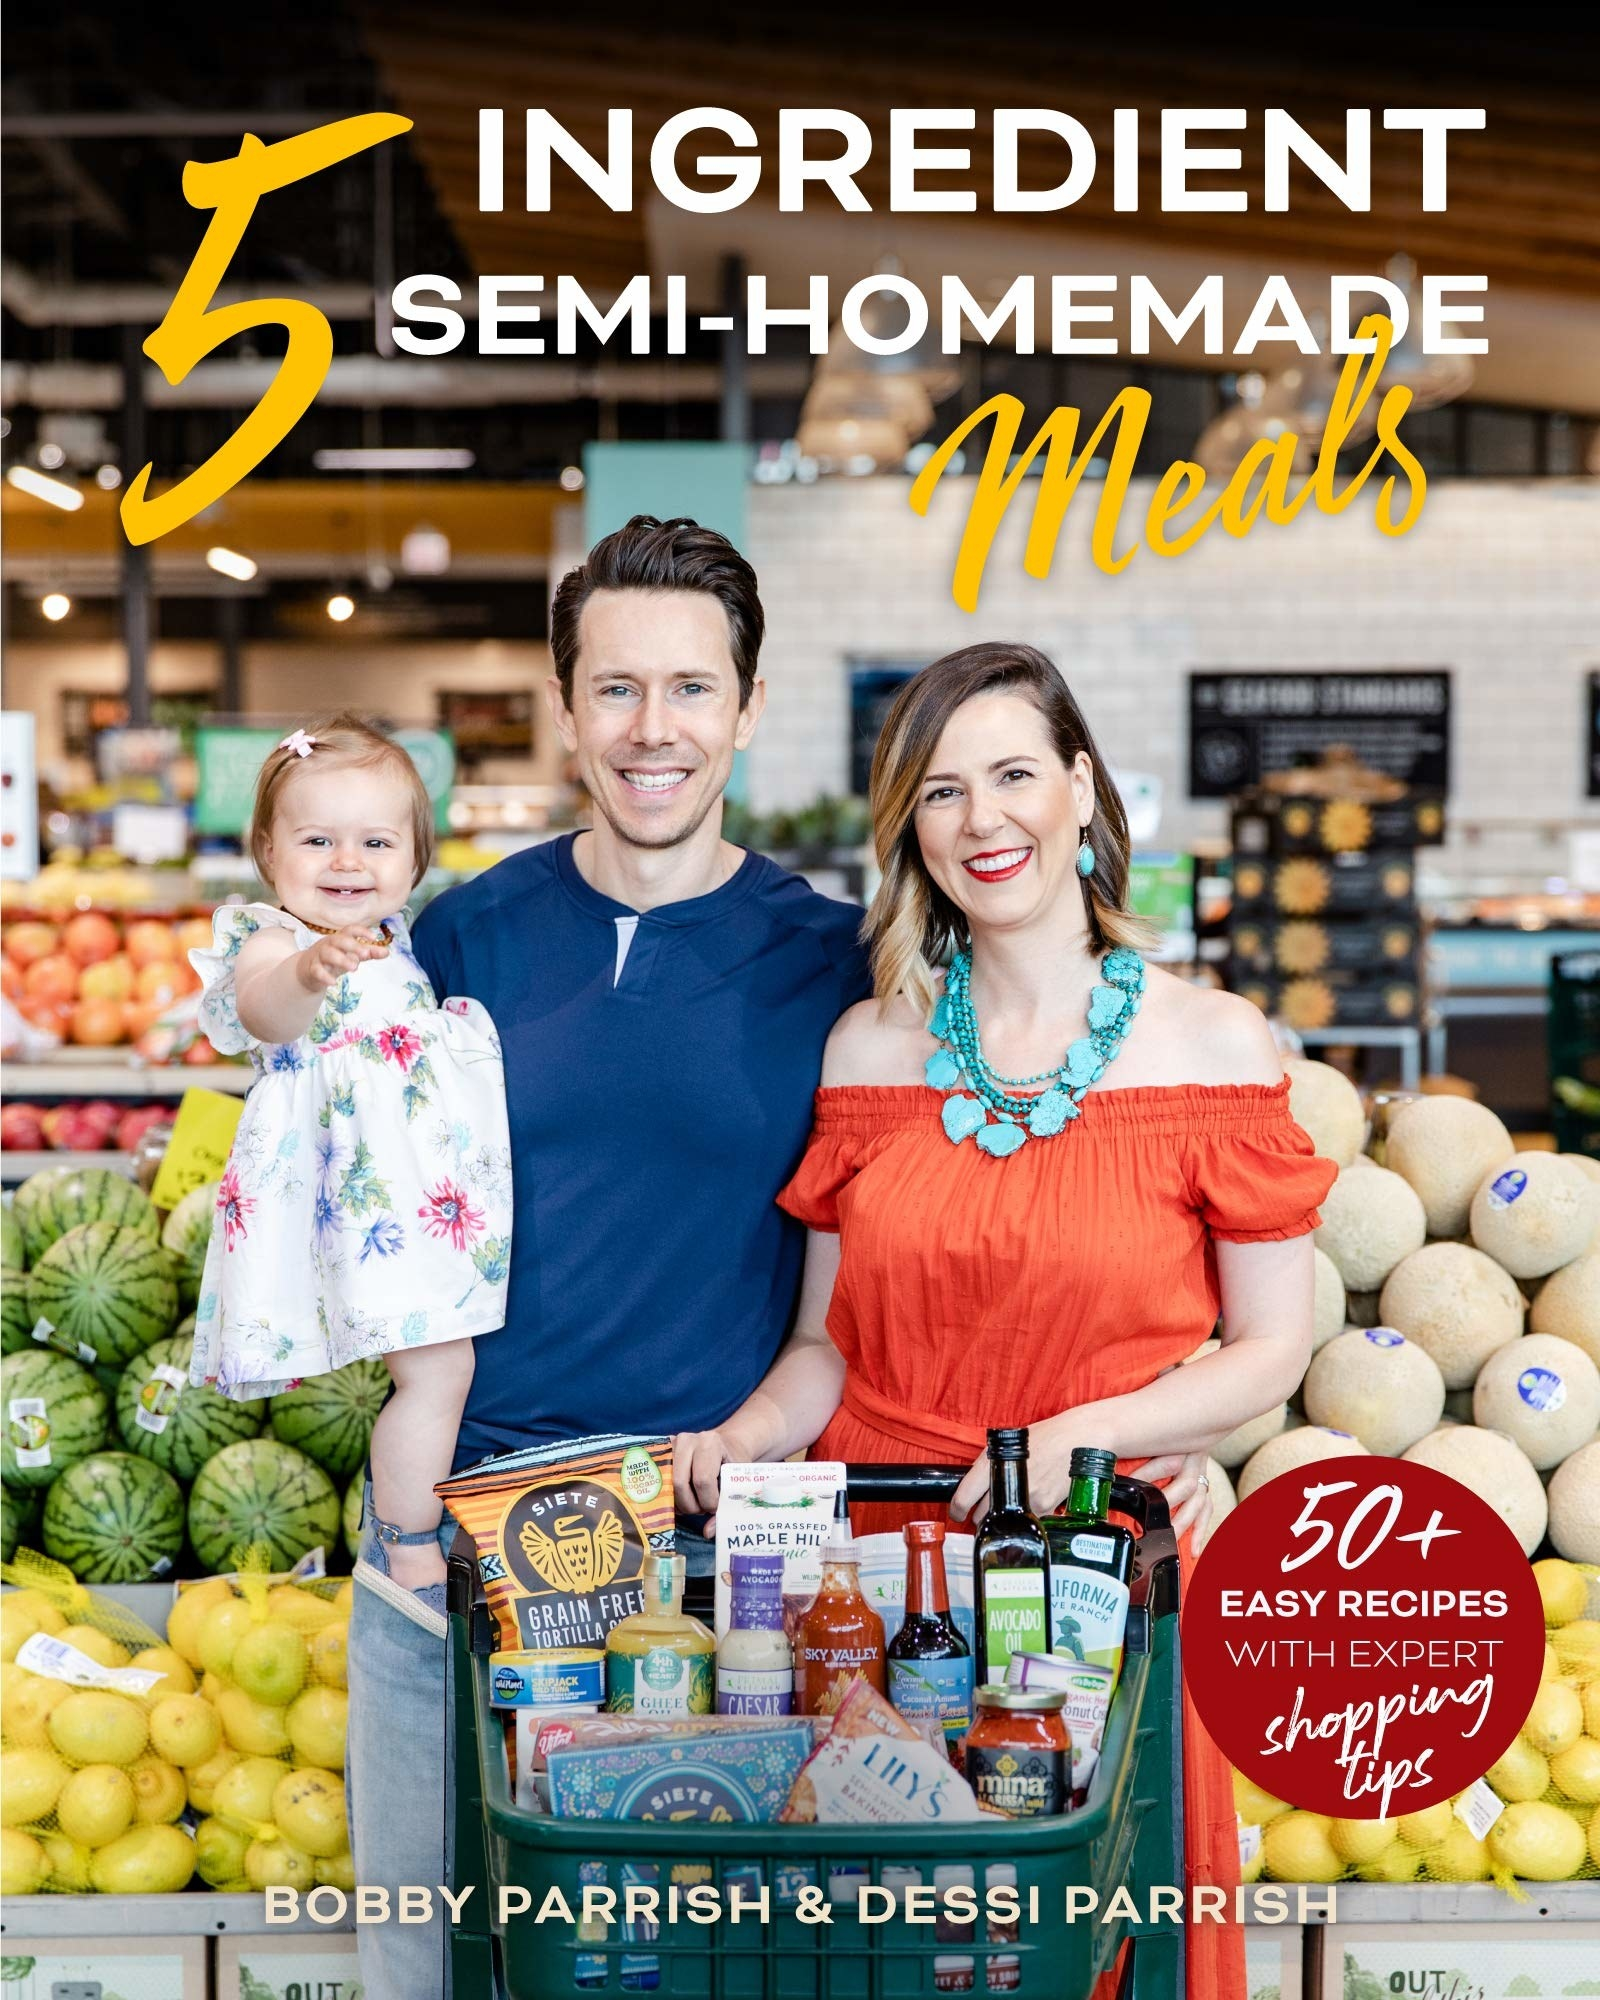 The cover of 5 Ingredient Semi-Homemade Meals